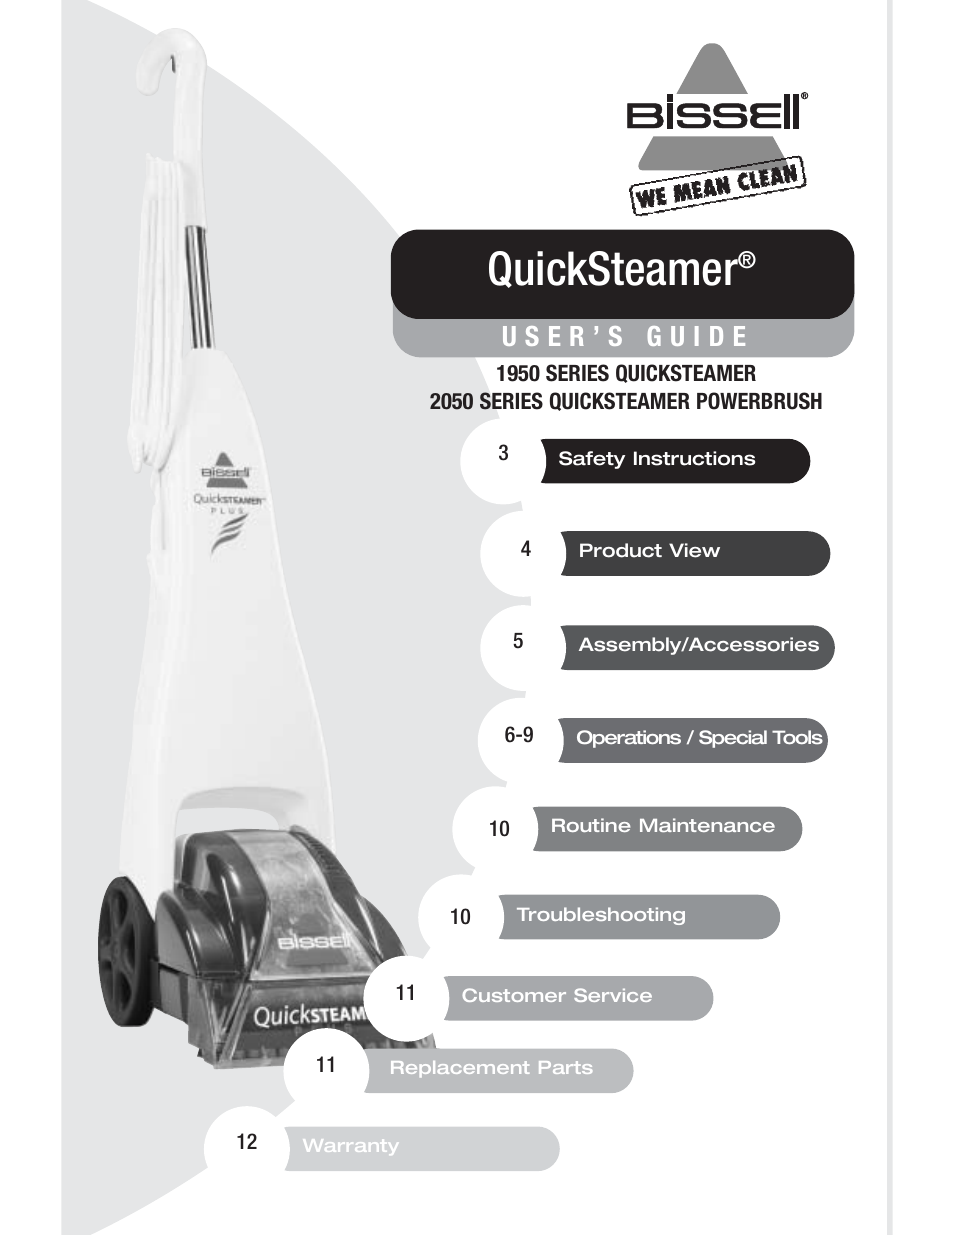 bissell 1950 quicksteamer user manual manual guide example 2018